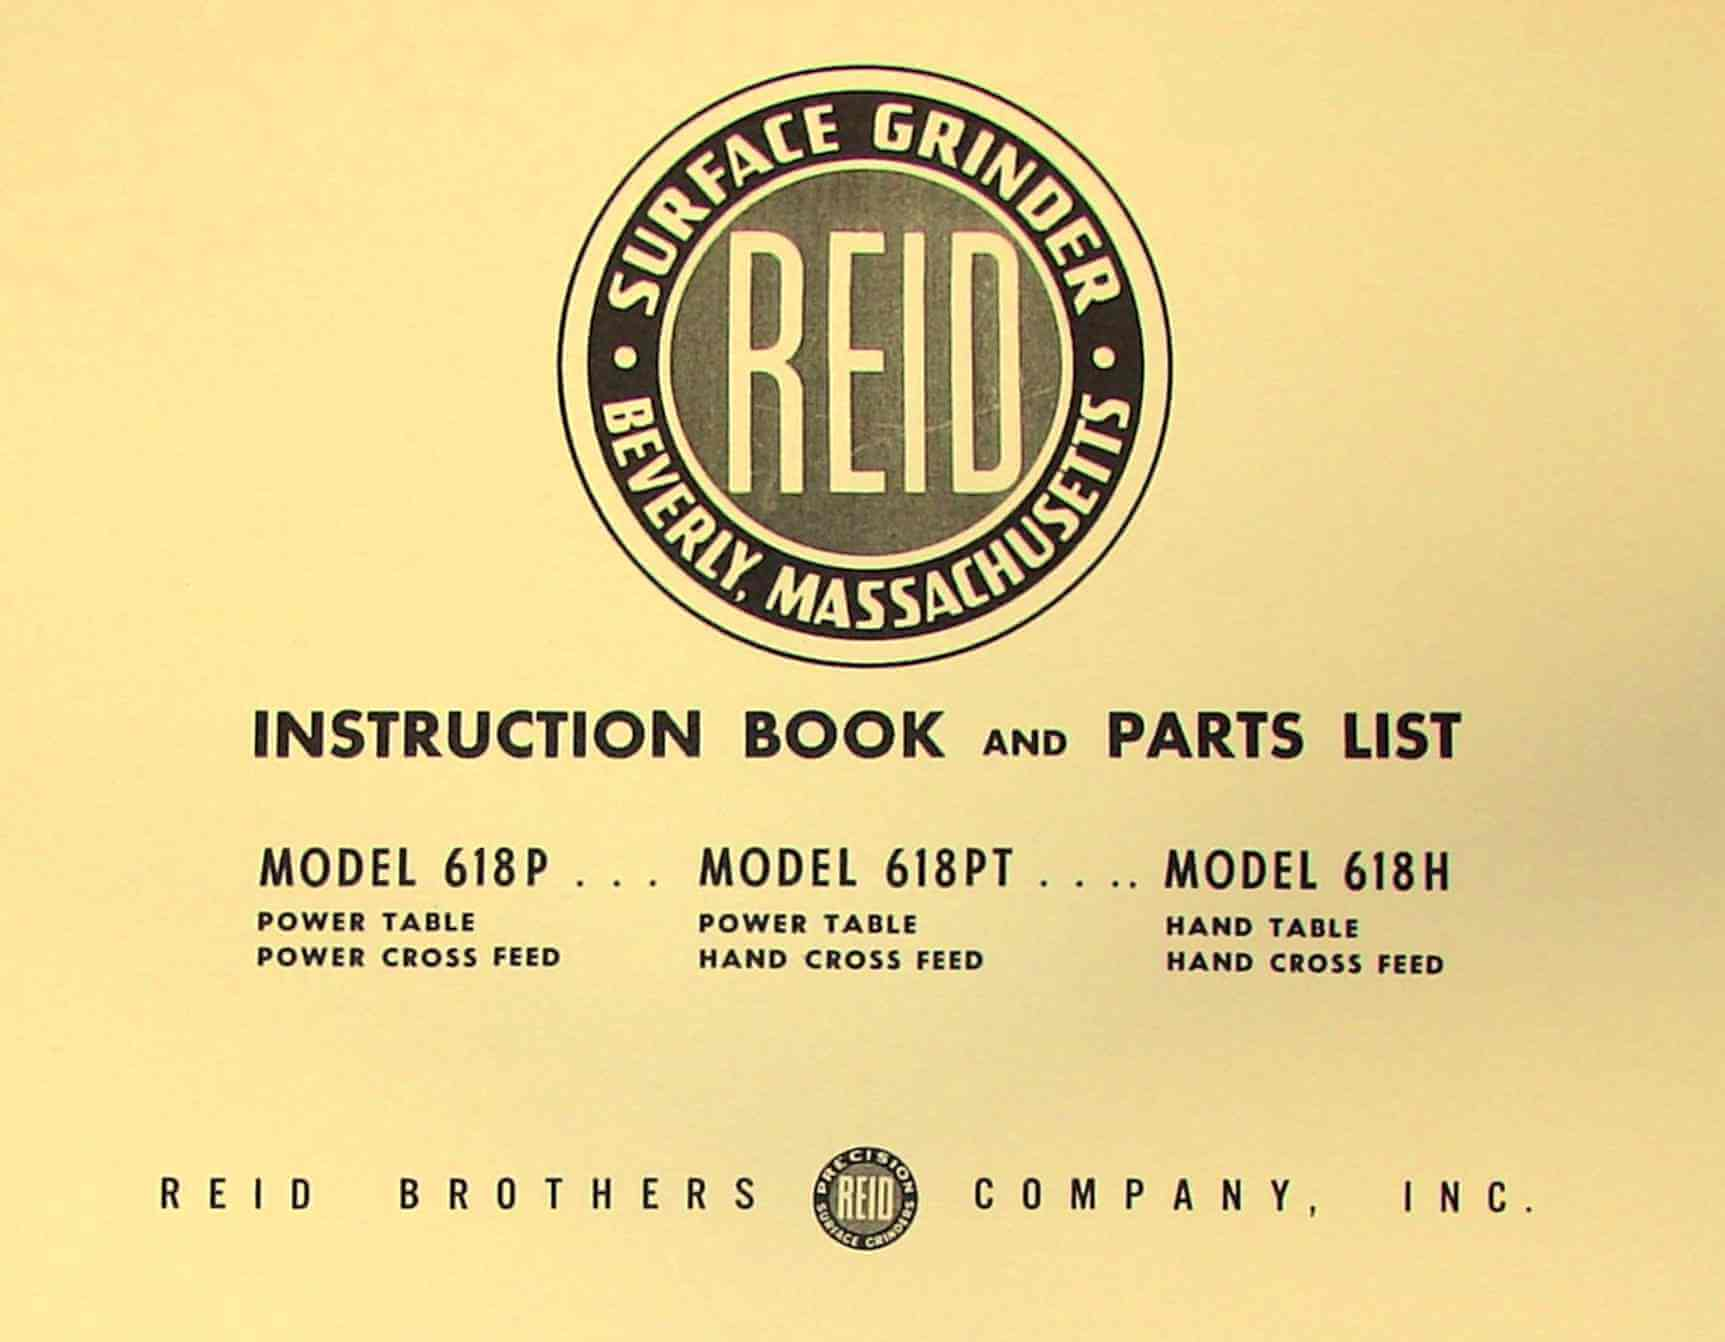 Reid 618p 618pt 618h Surface Grinder Instructions Parts Manual Kysor Cadillac Wiring Diagram Ozark Tool Manuals Books